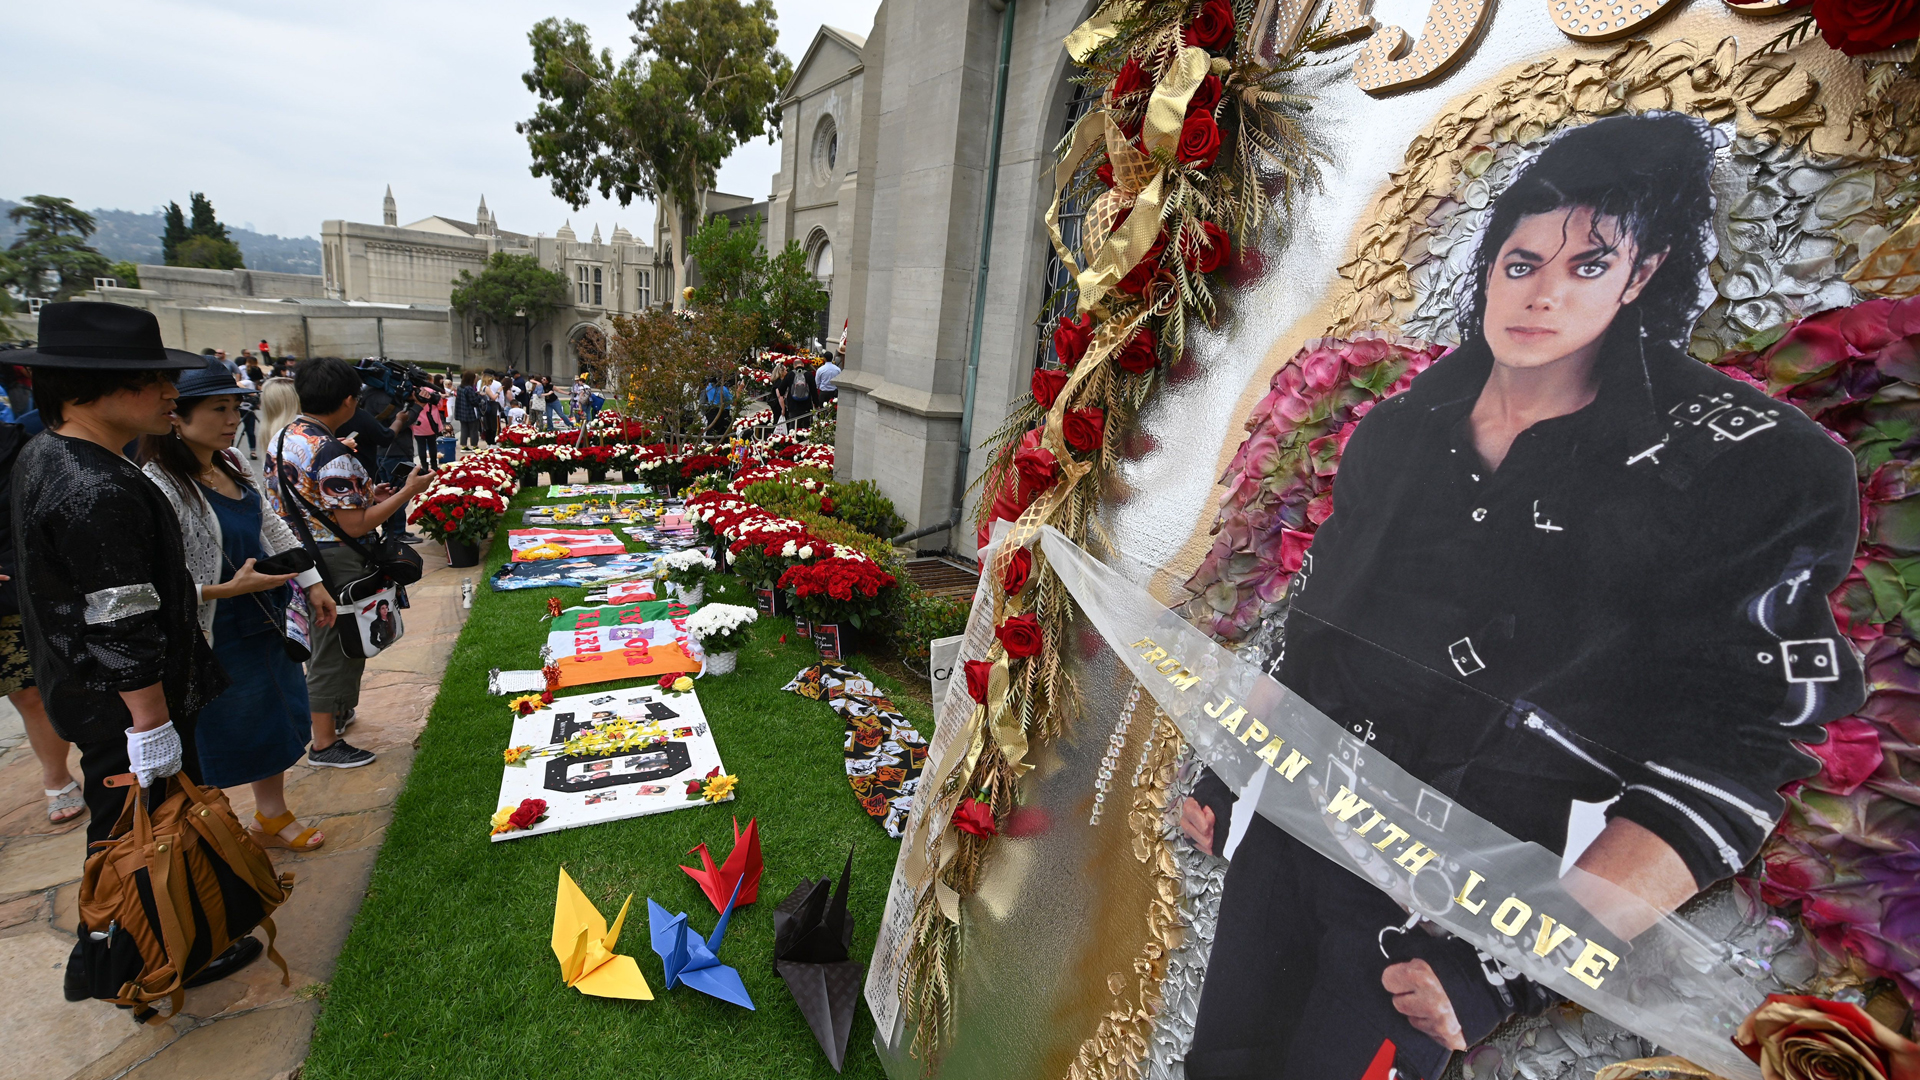 Fans visit Michael Jackson's mausoleum at Forest Lawn Cemetery in Glendale, California on June 25, 2019, the 10th anniversary of the King of Pop's death. (Credit: Robyn Beck/AFP/Getty Images)